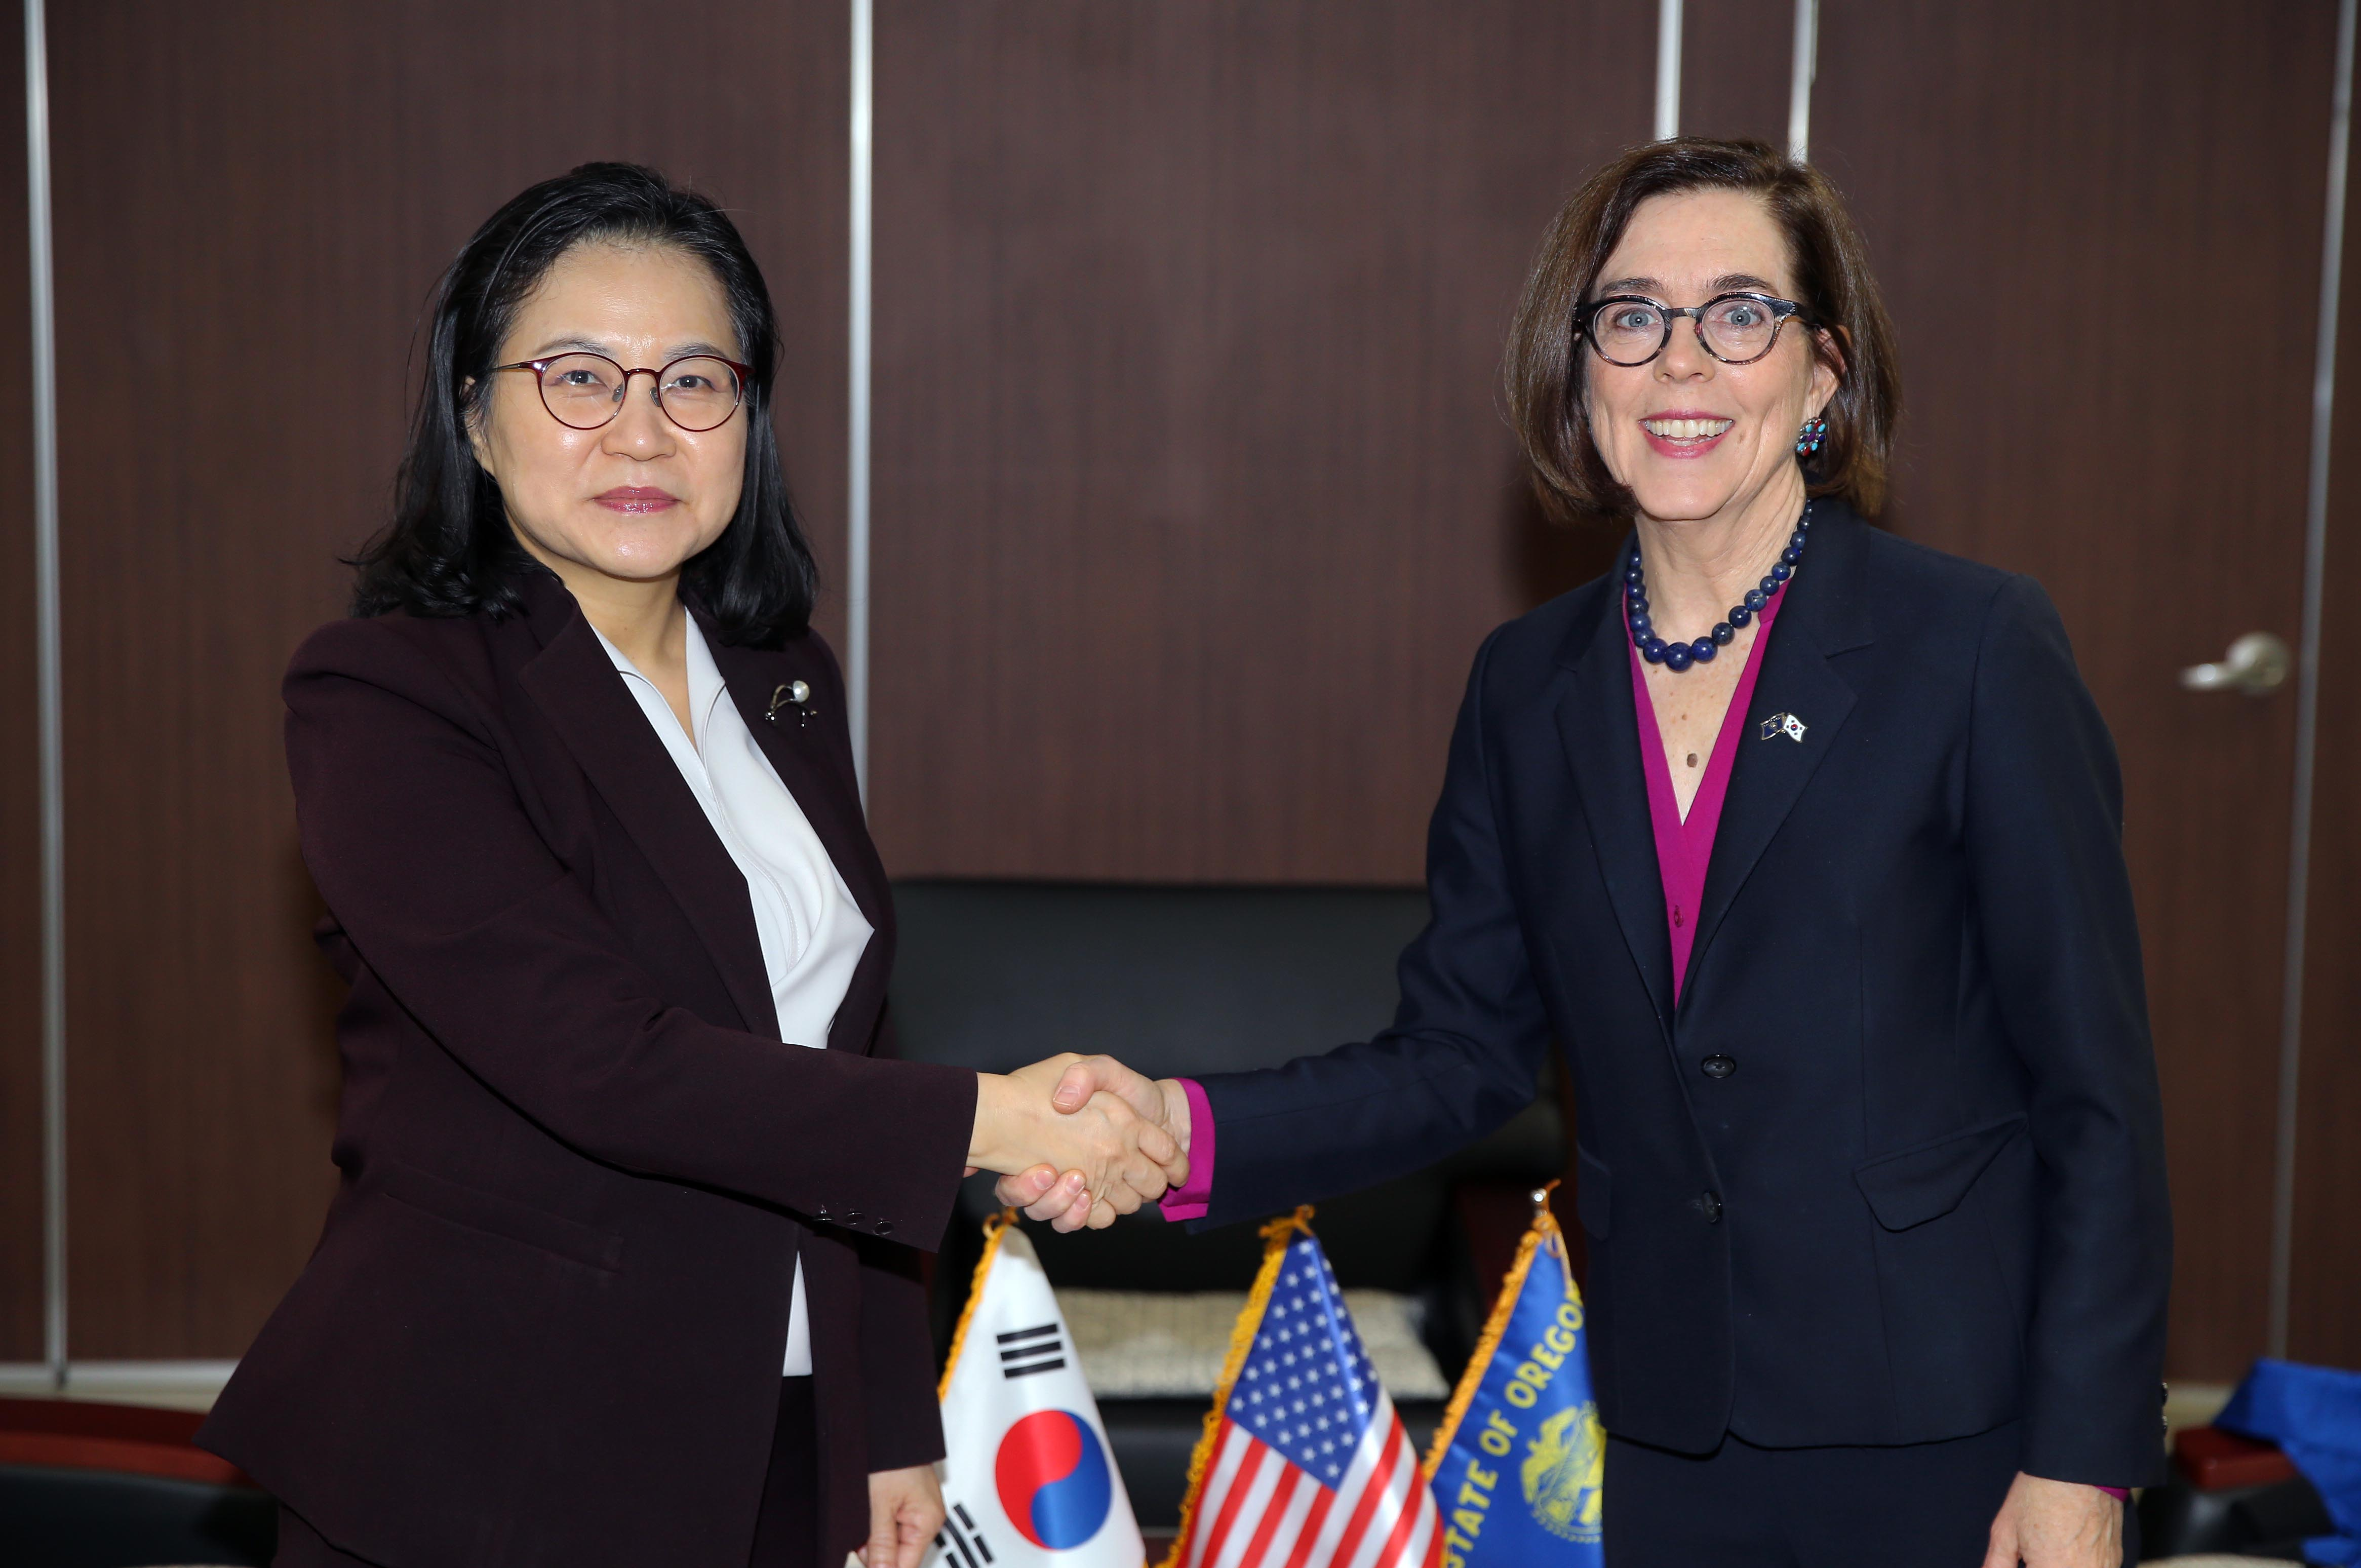 Trade Minister Yoo met with Governor of Oregon